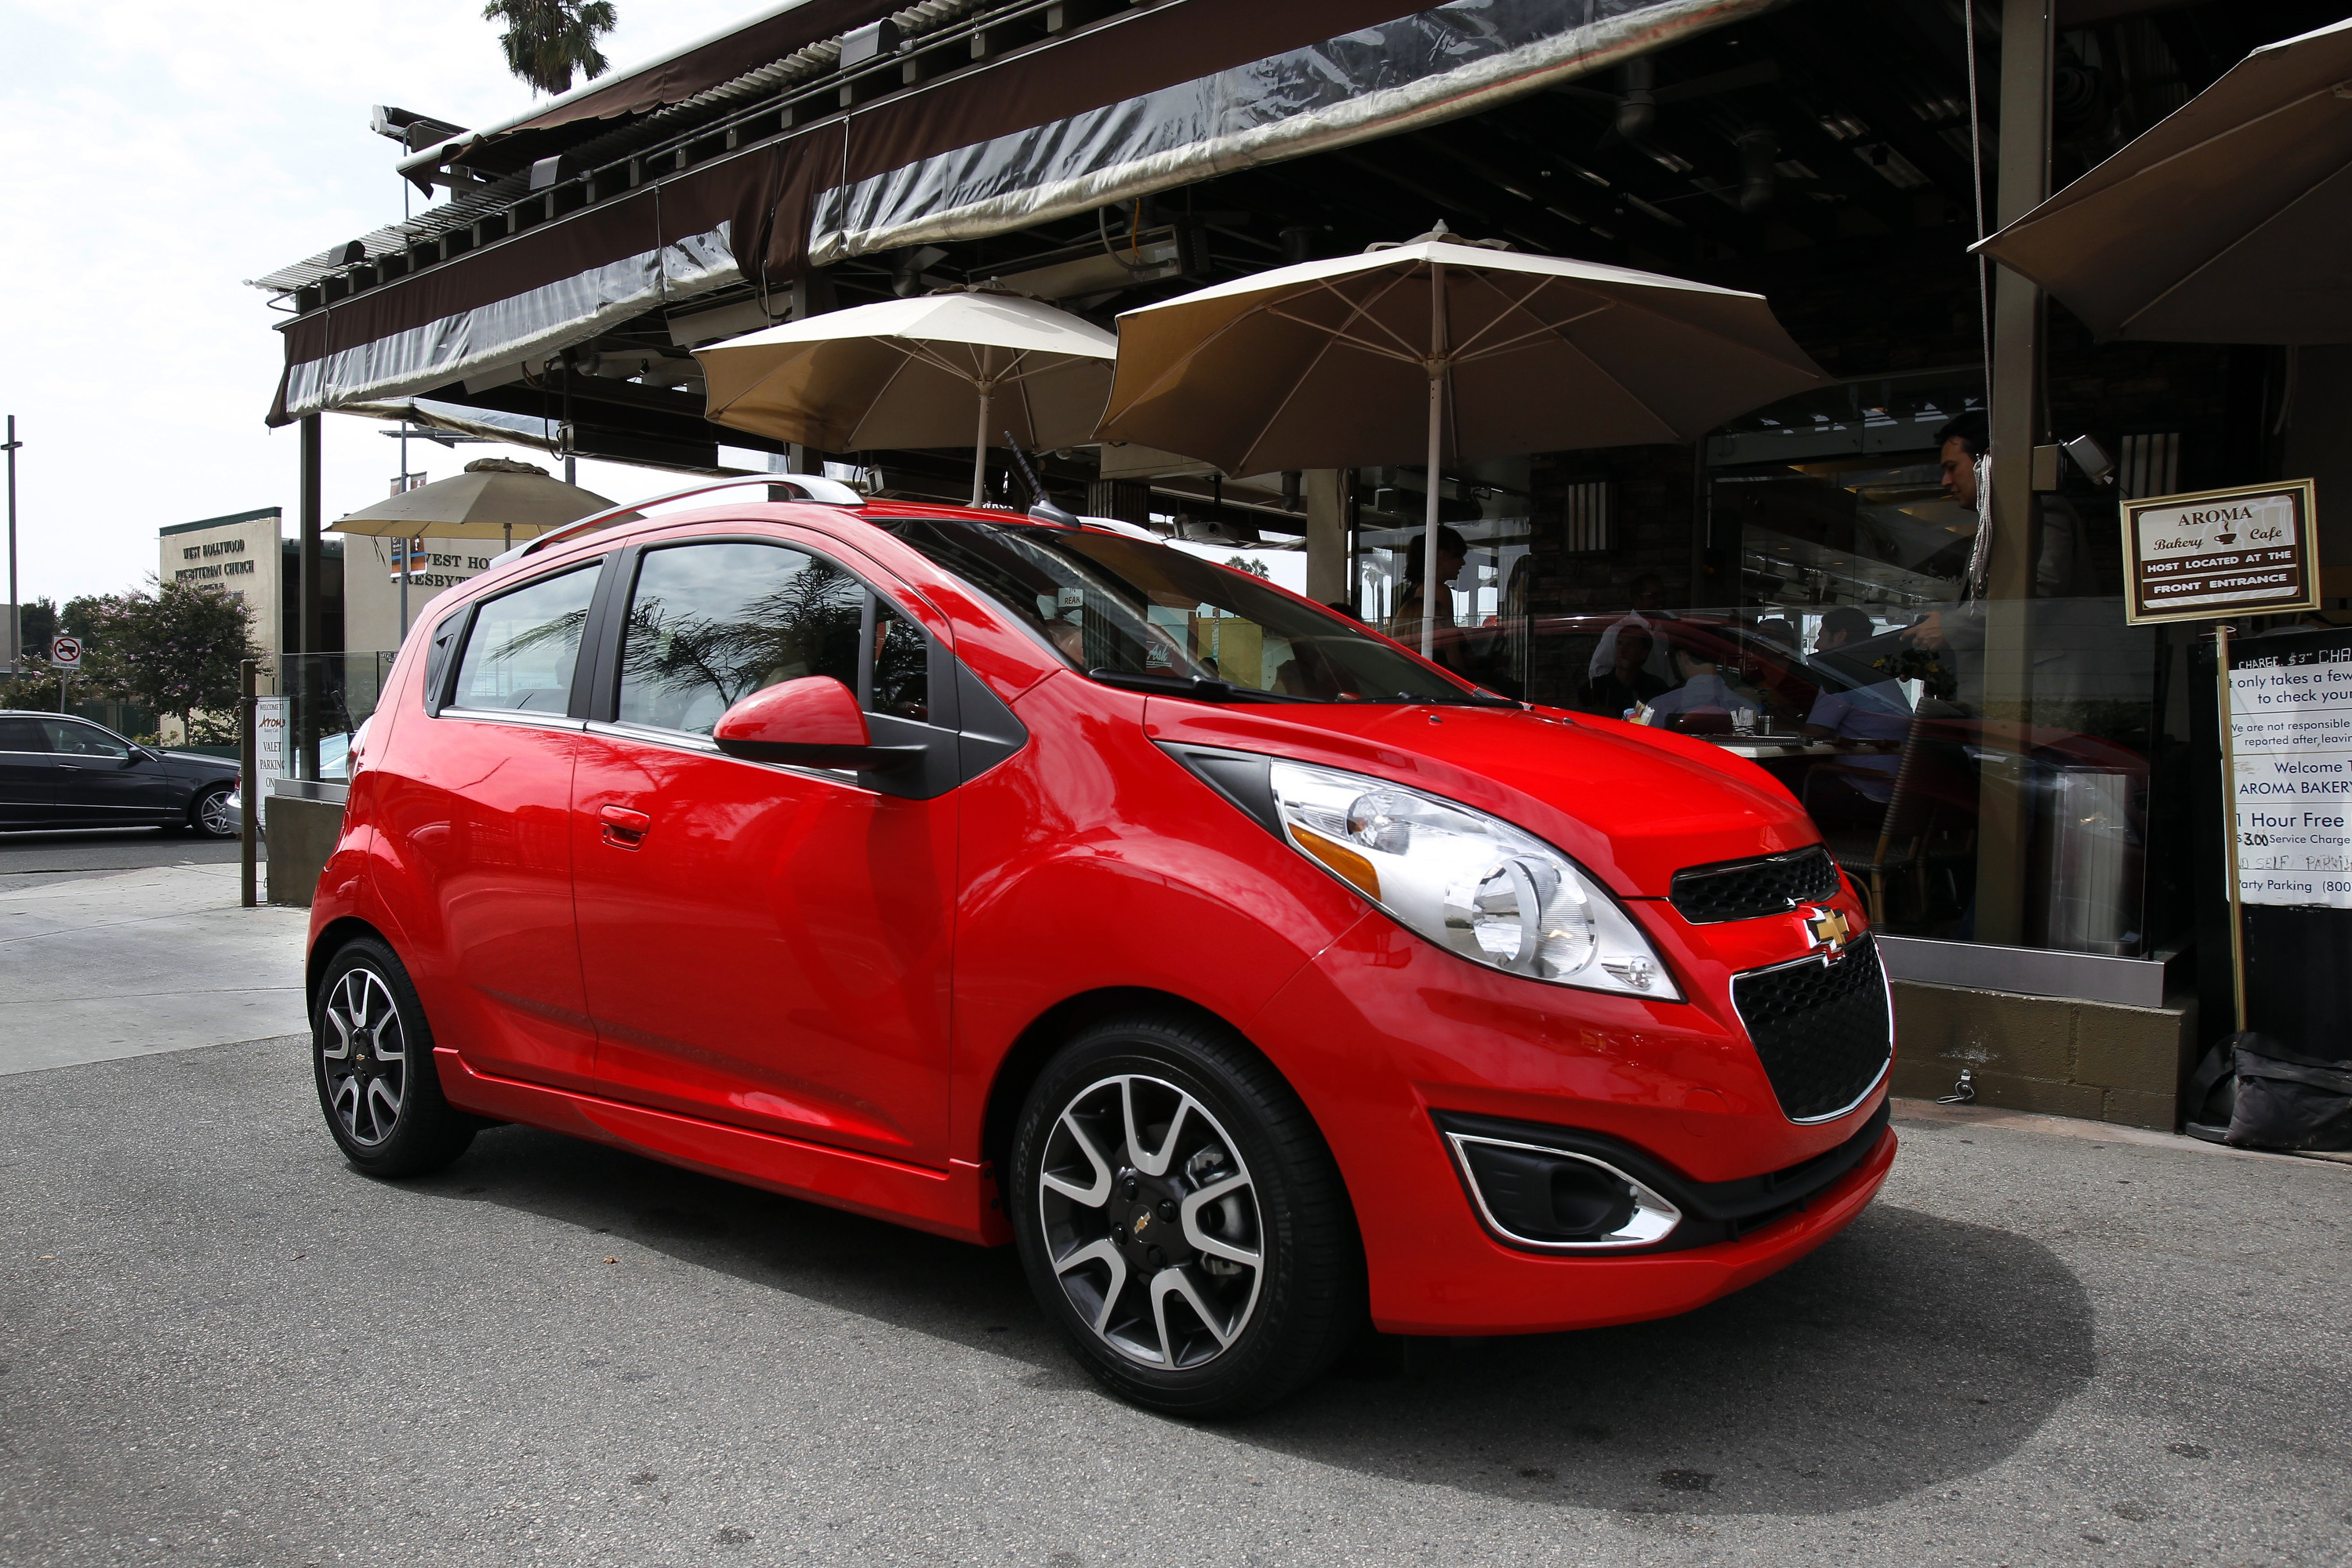 2013 Chevrolet Spark Mini Car Now Available at Guaranty Wallpaper For Computer